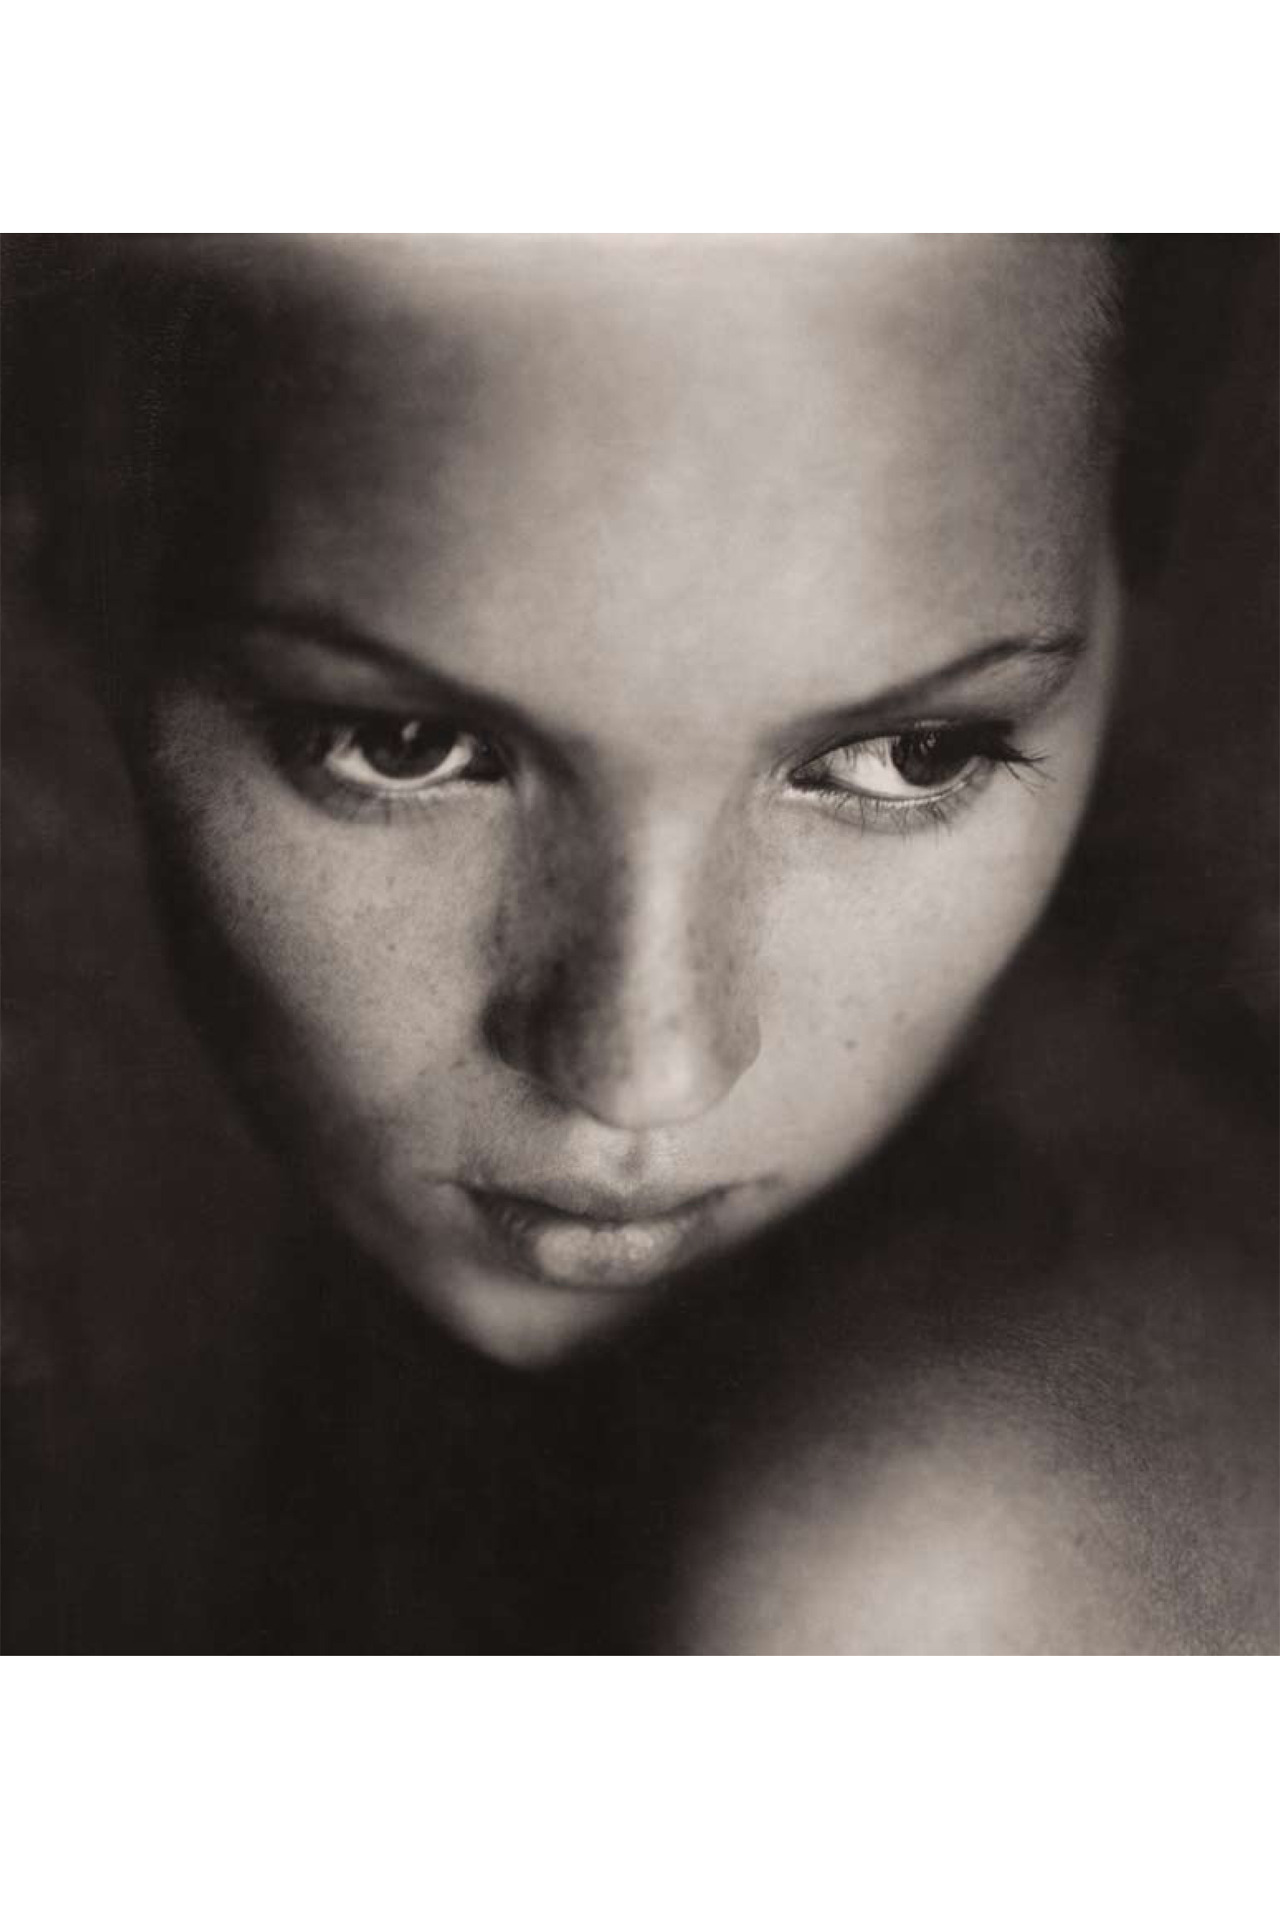 Kate Moss photographed by Paolo Roversi in 1993